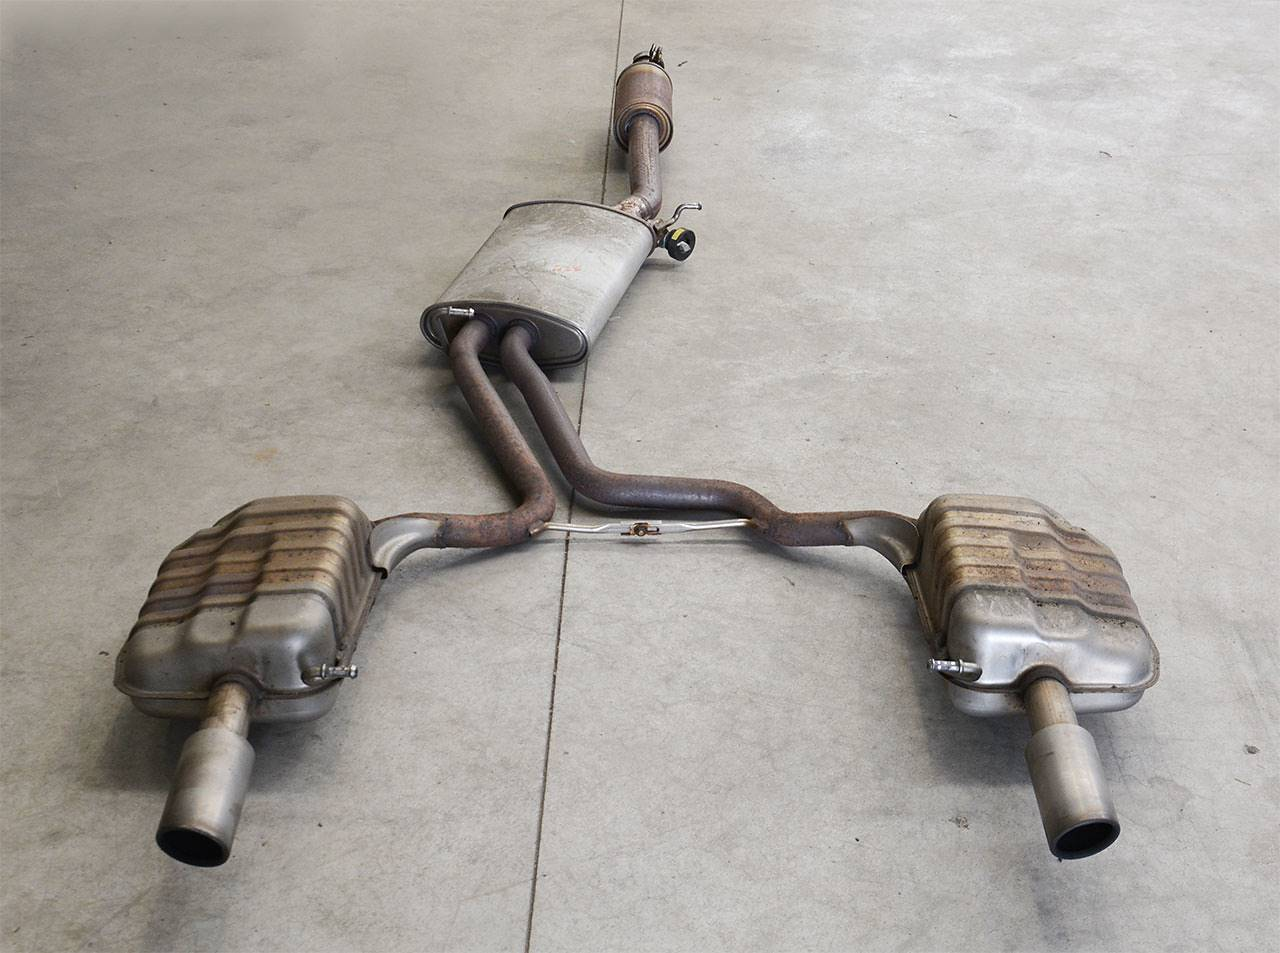 OEM exhaust system